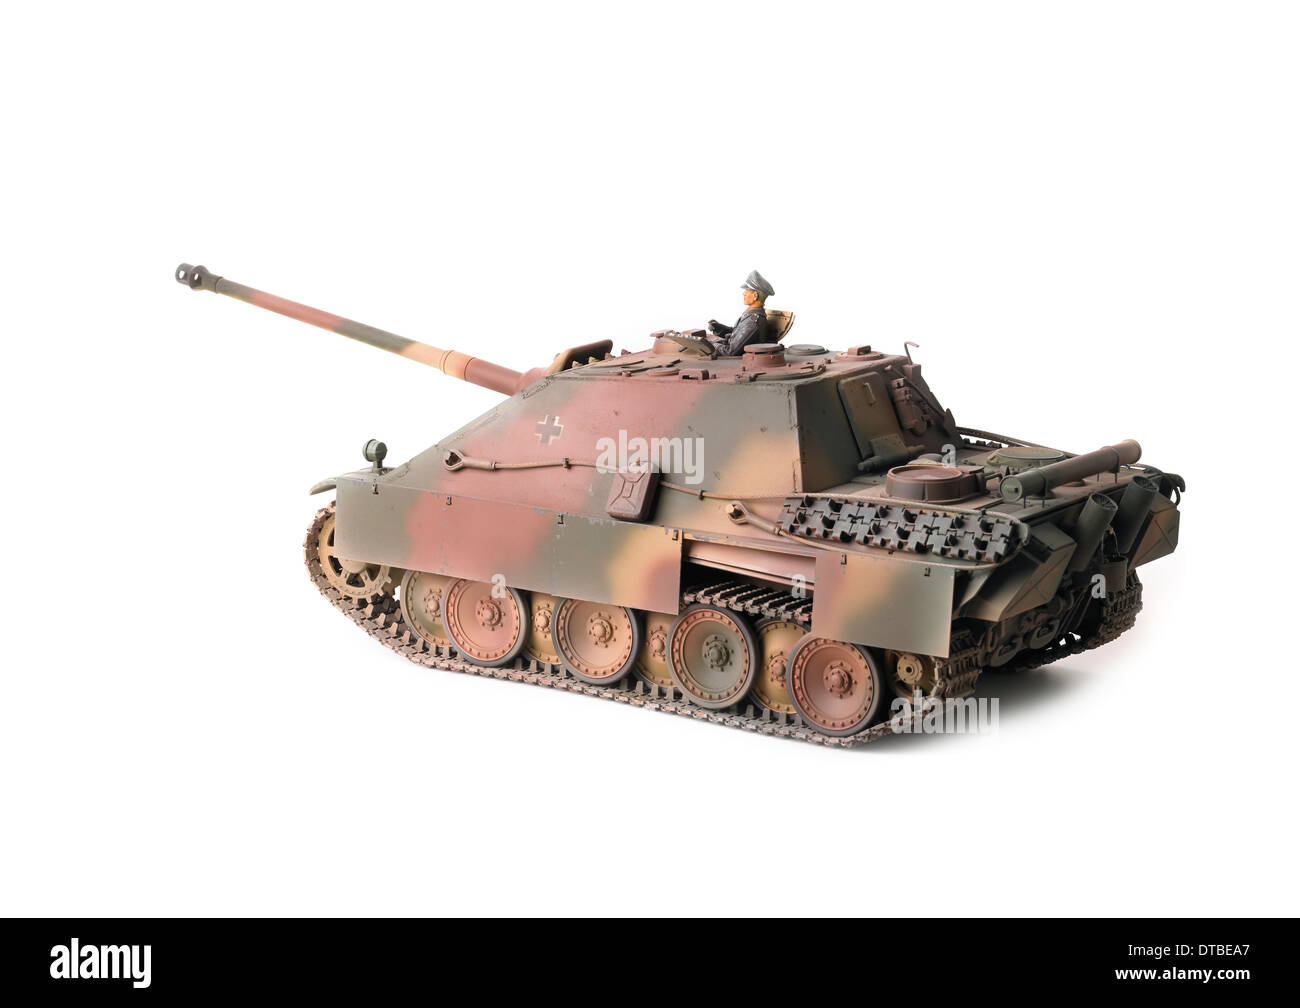 Jagdpanther tank hunter in German WW2 European theatre camouflage with armoured side skirts - Stock Image